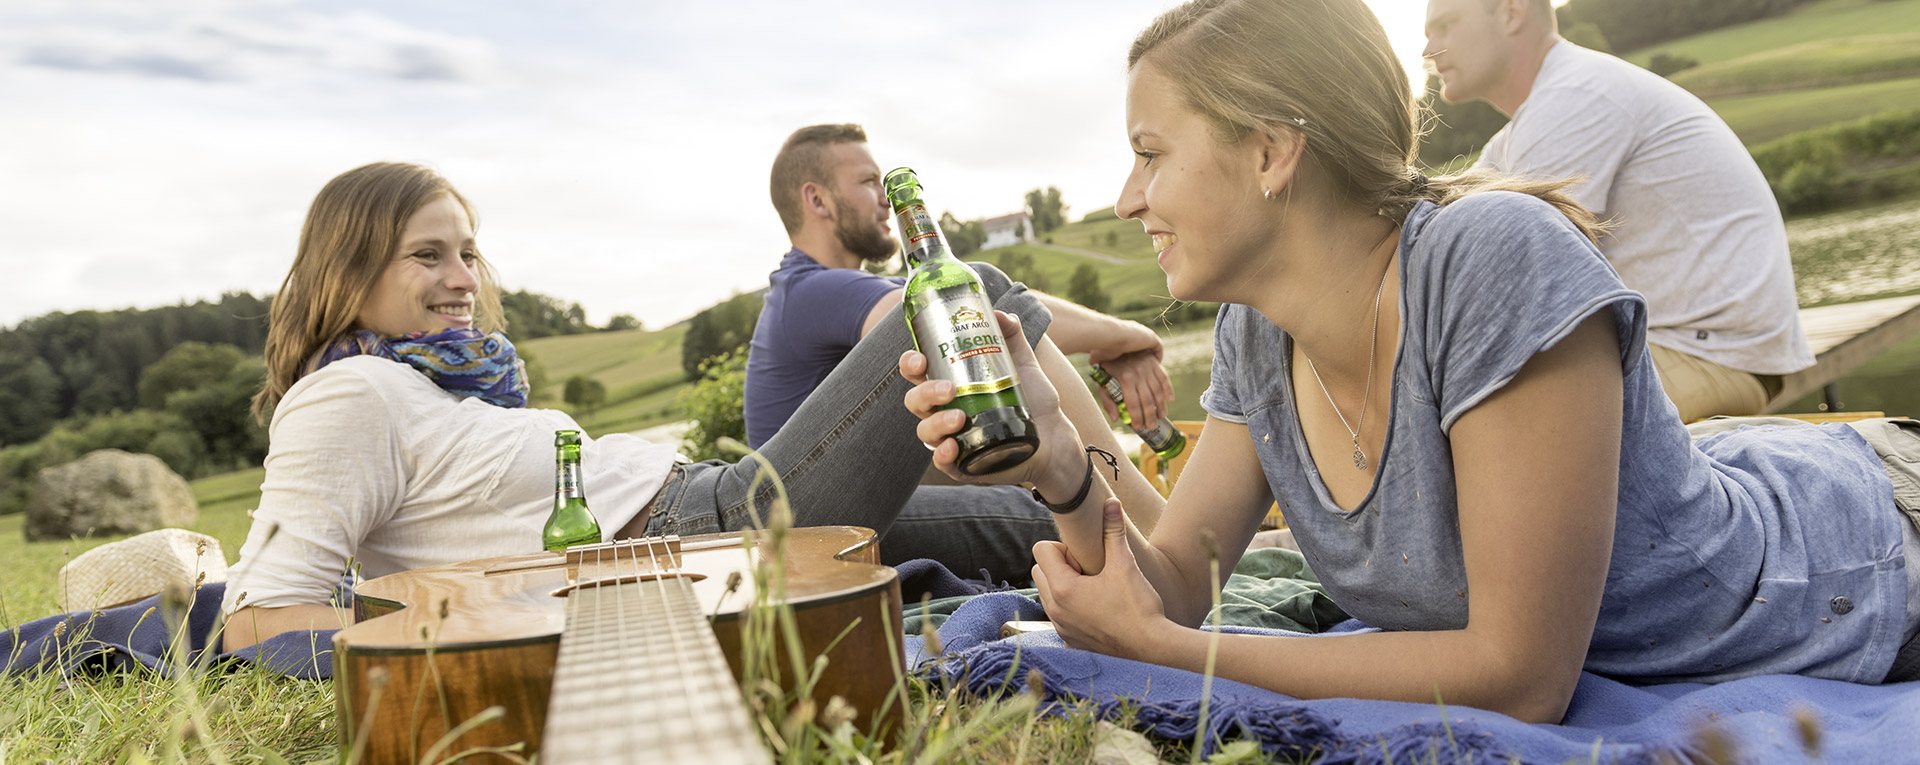 GrafArco_Slider_Pilsener_Picknick_16